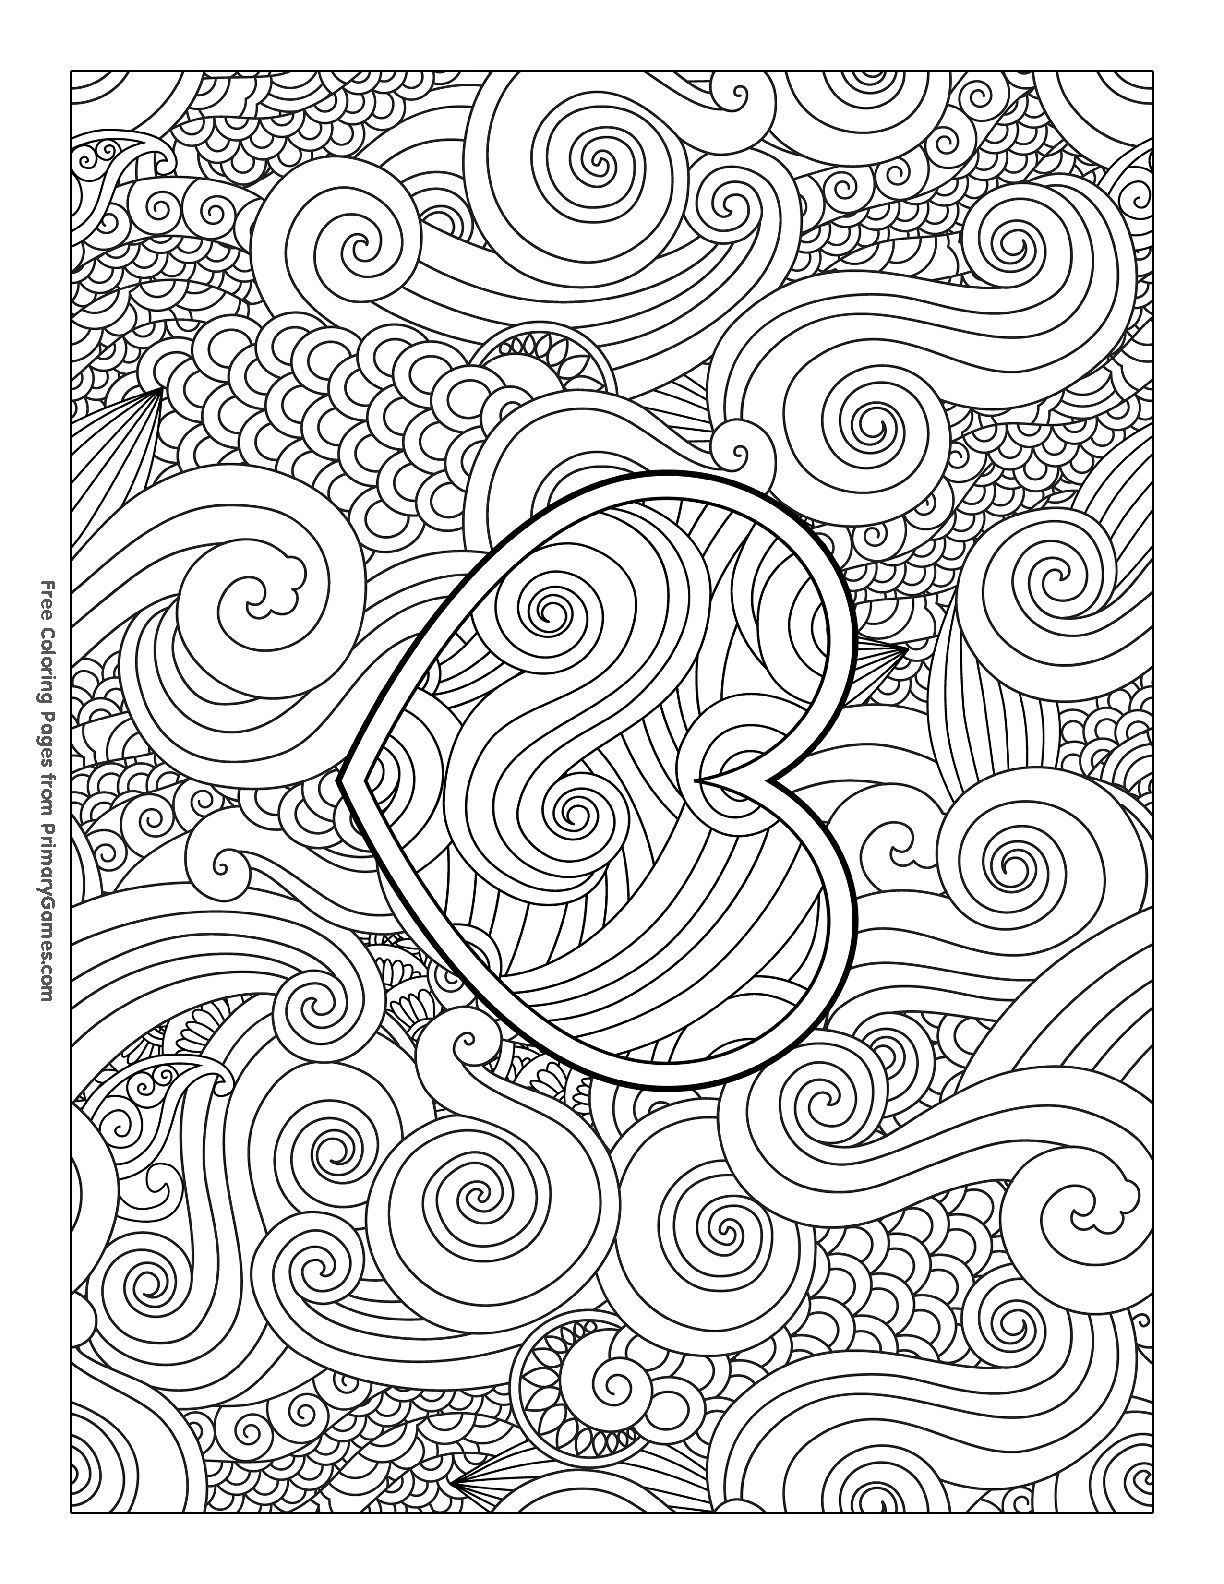 Pin By Raeann Pearce On Coloring Coloring Pages Valentines